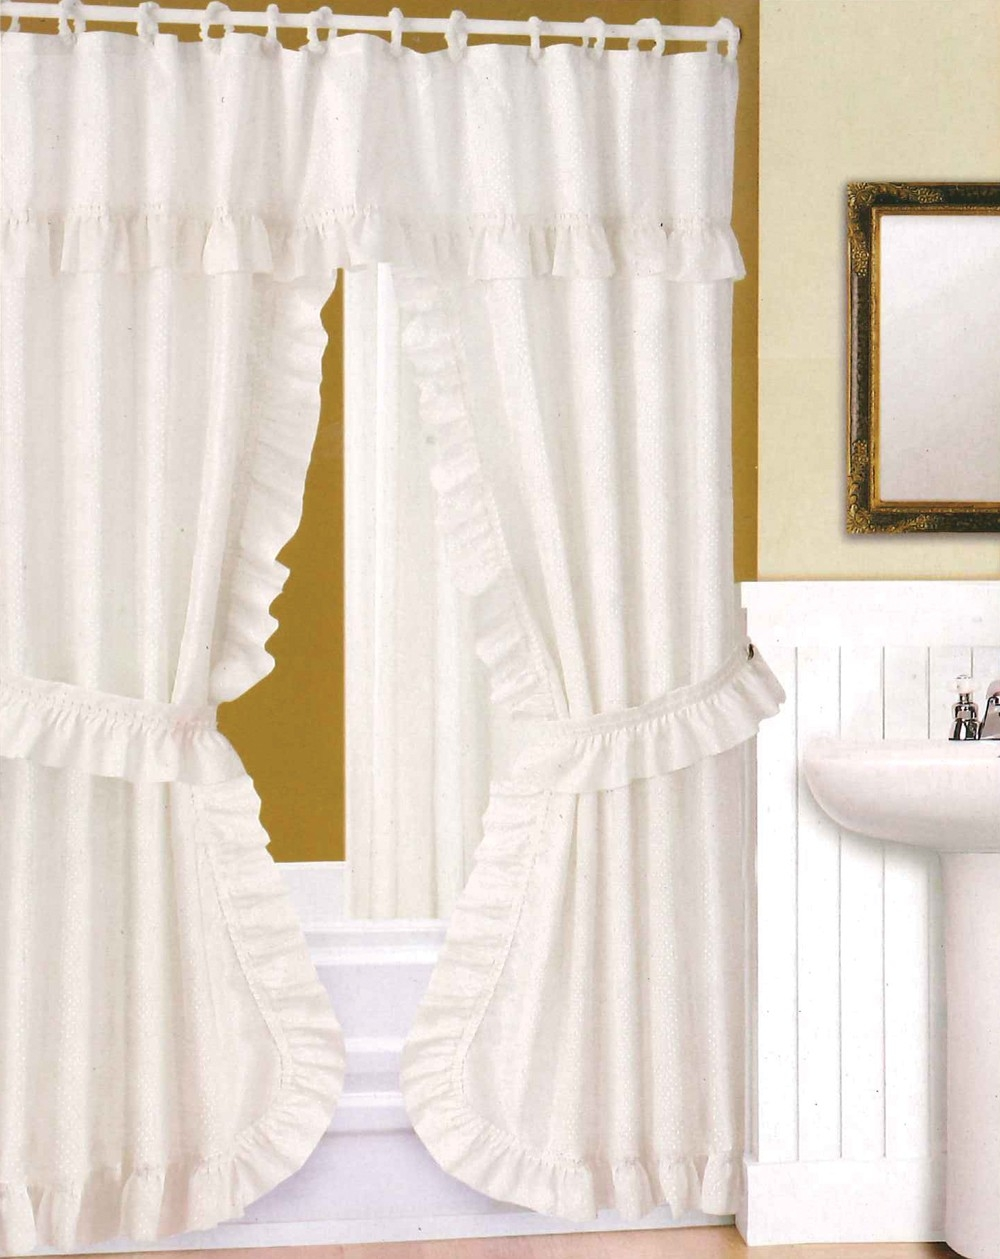 Double Swag Shower Curtain Curtains Decoration Intended For Double Panel Shower Curtains (View 24 of 25)